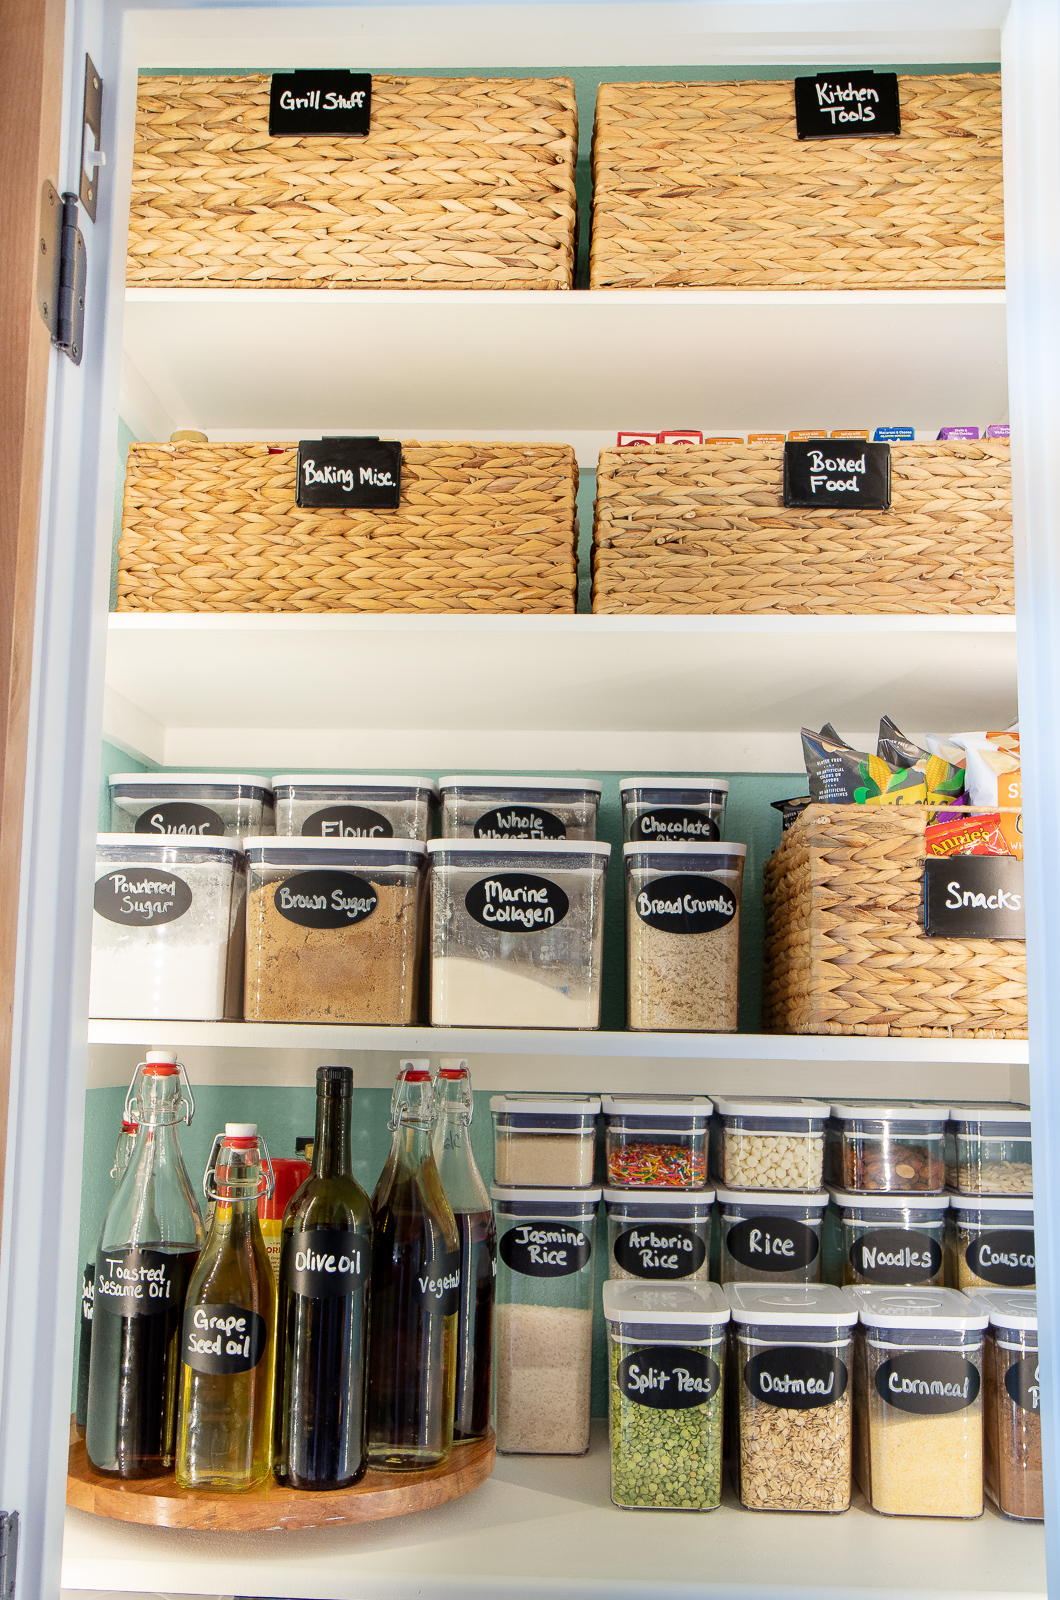 OXO food canisters in pantry